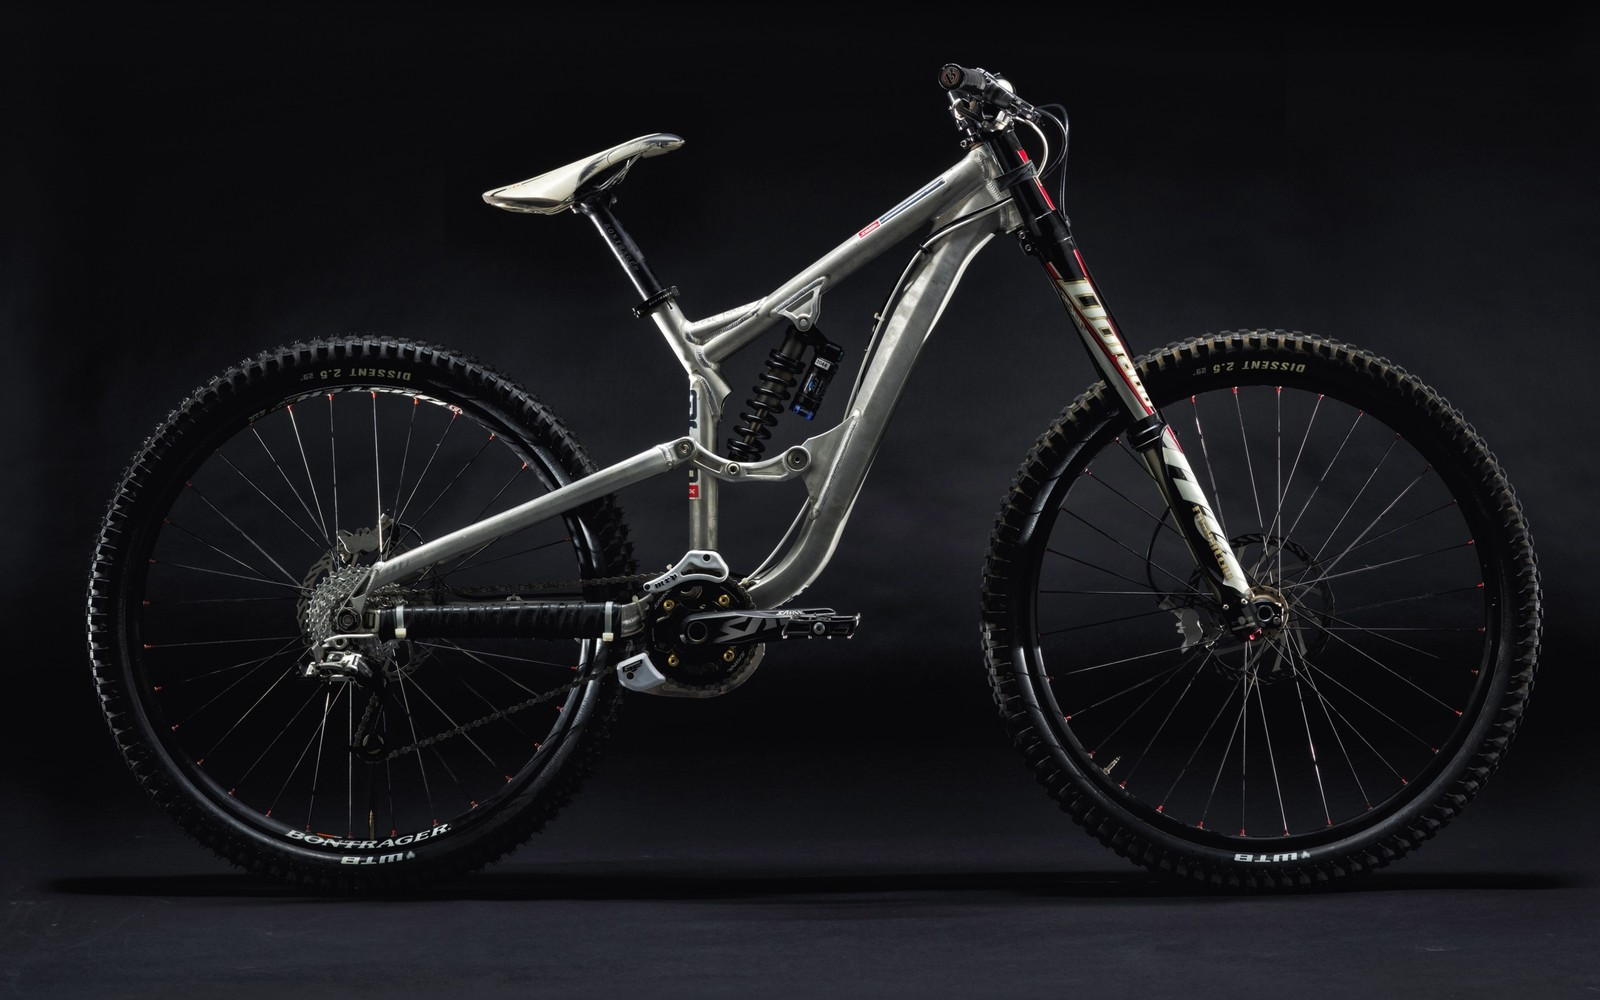 2009 29er prototype with 180mm travel, a 64.5-degree head angle and 440mm chainstays.